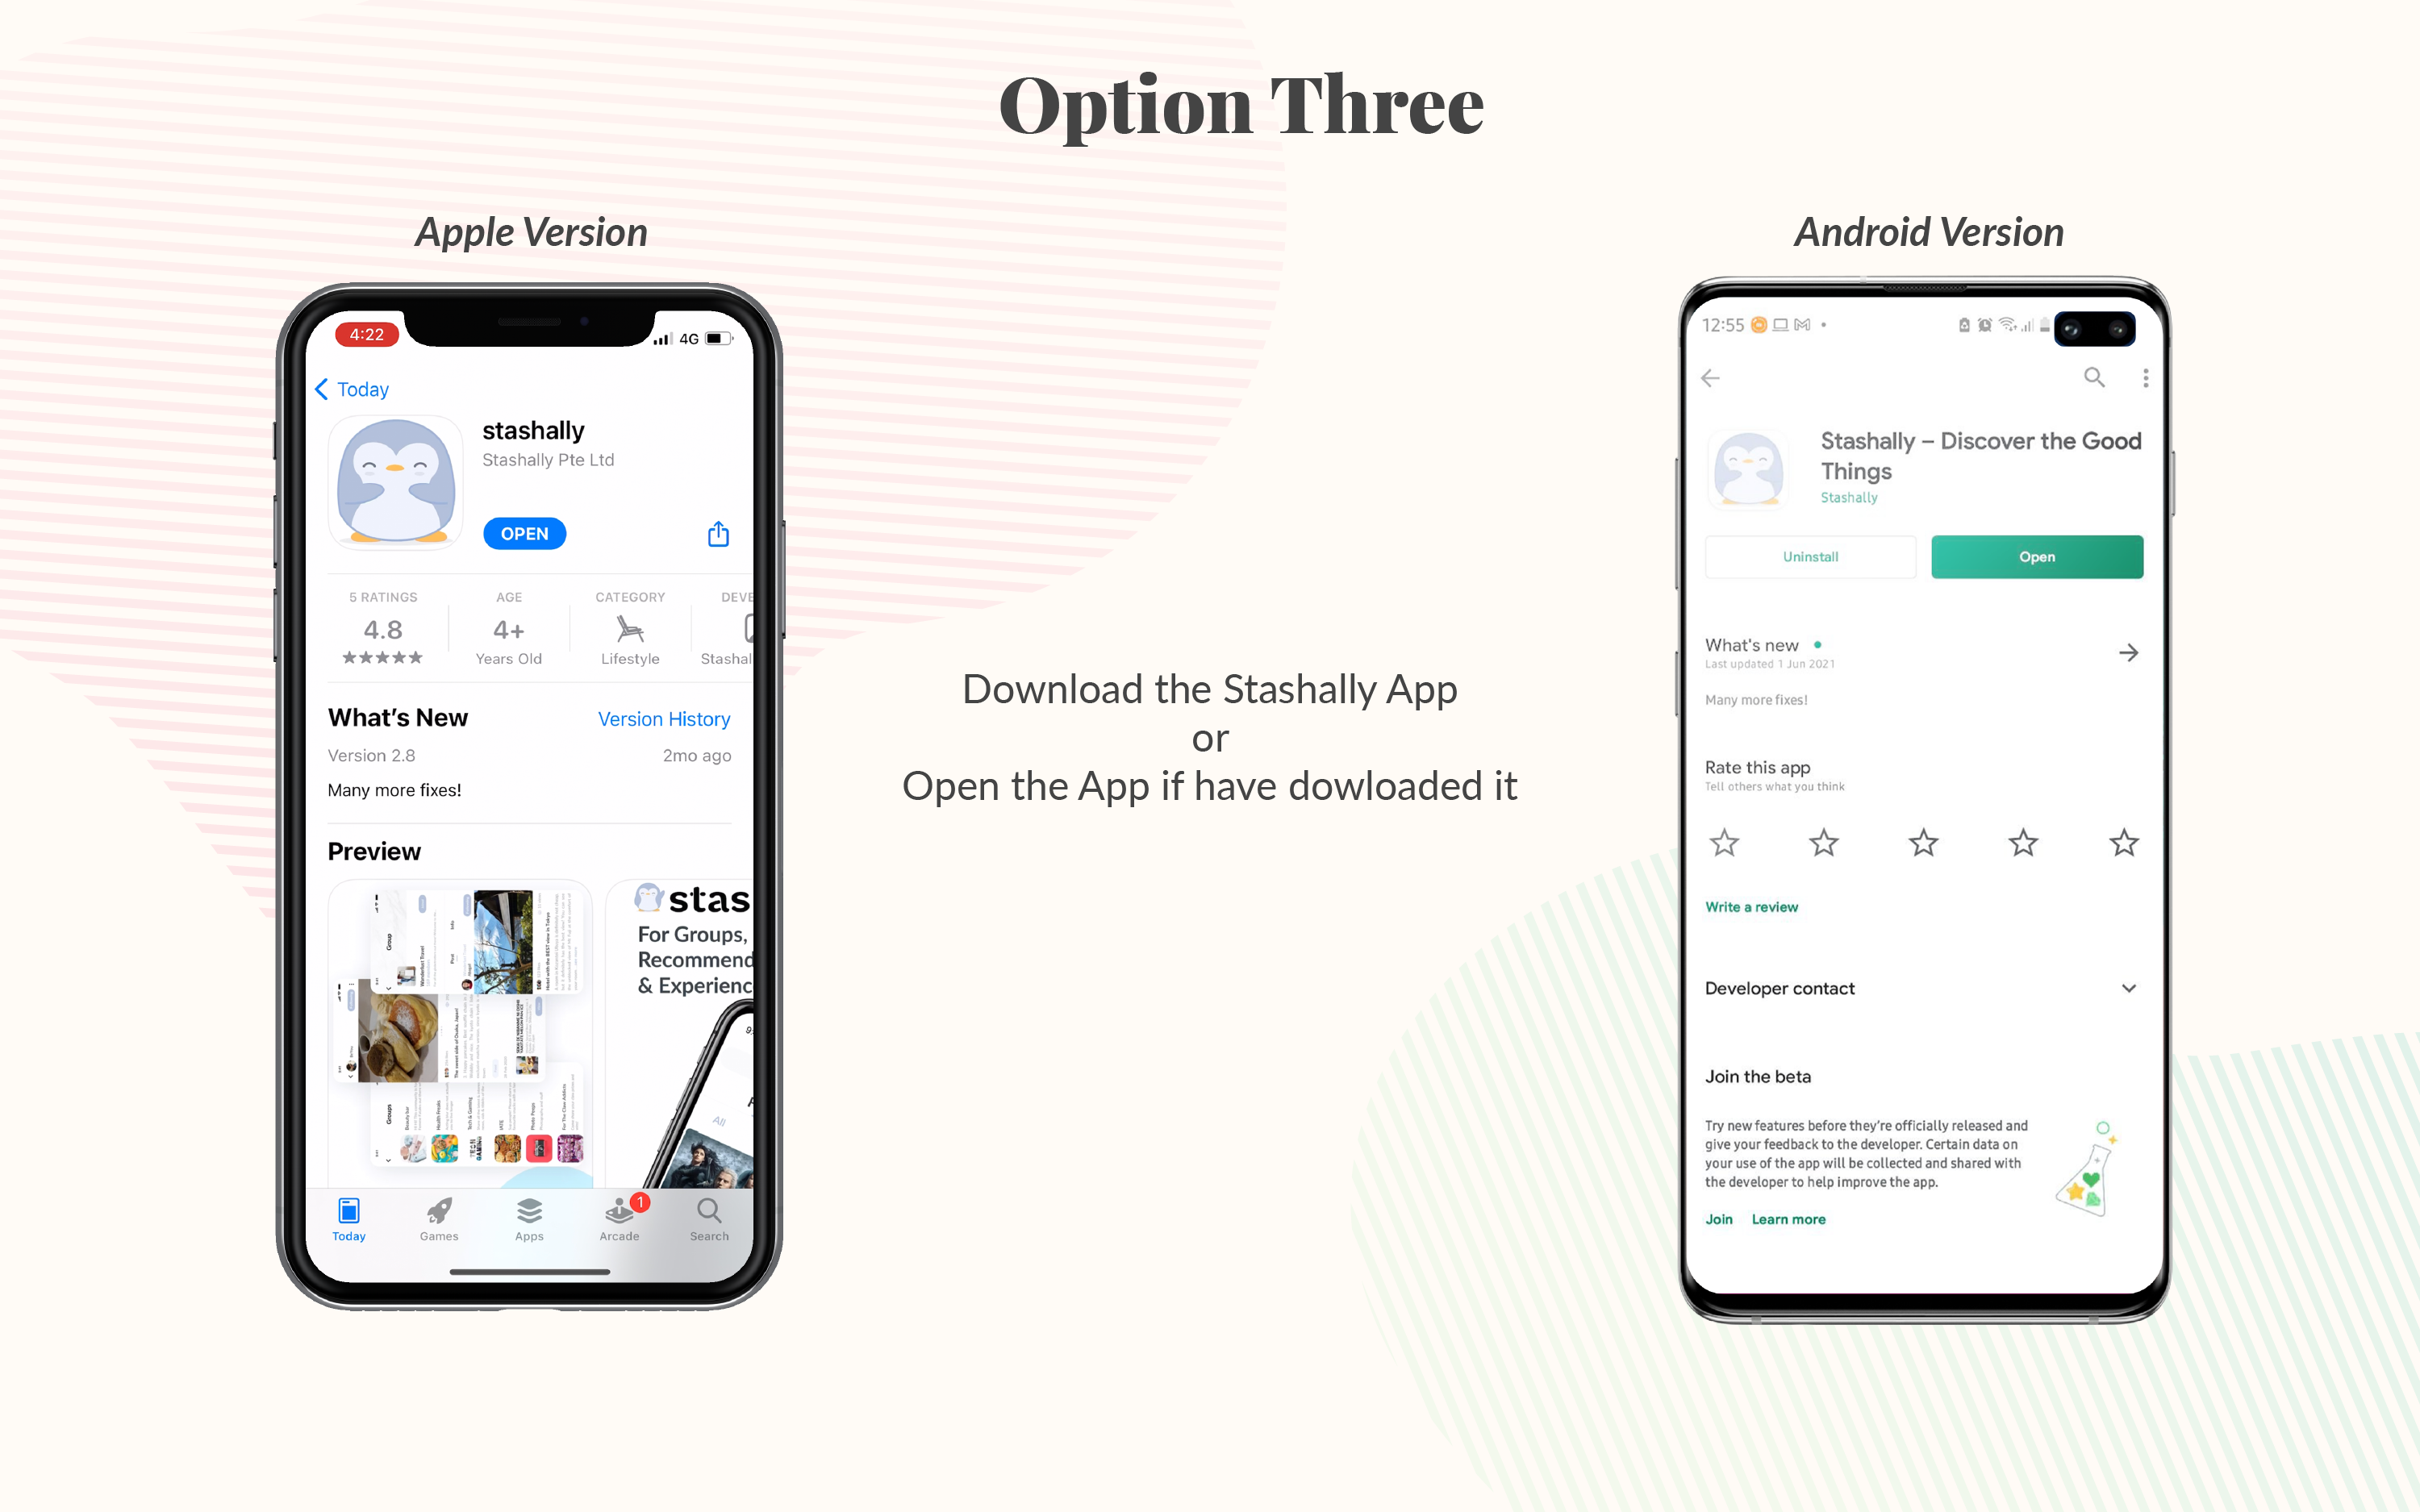 Sample Store Review Giveaway Guide #3: Repost Reviews From Stashally App